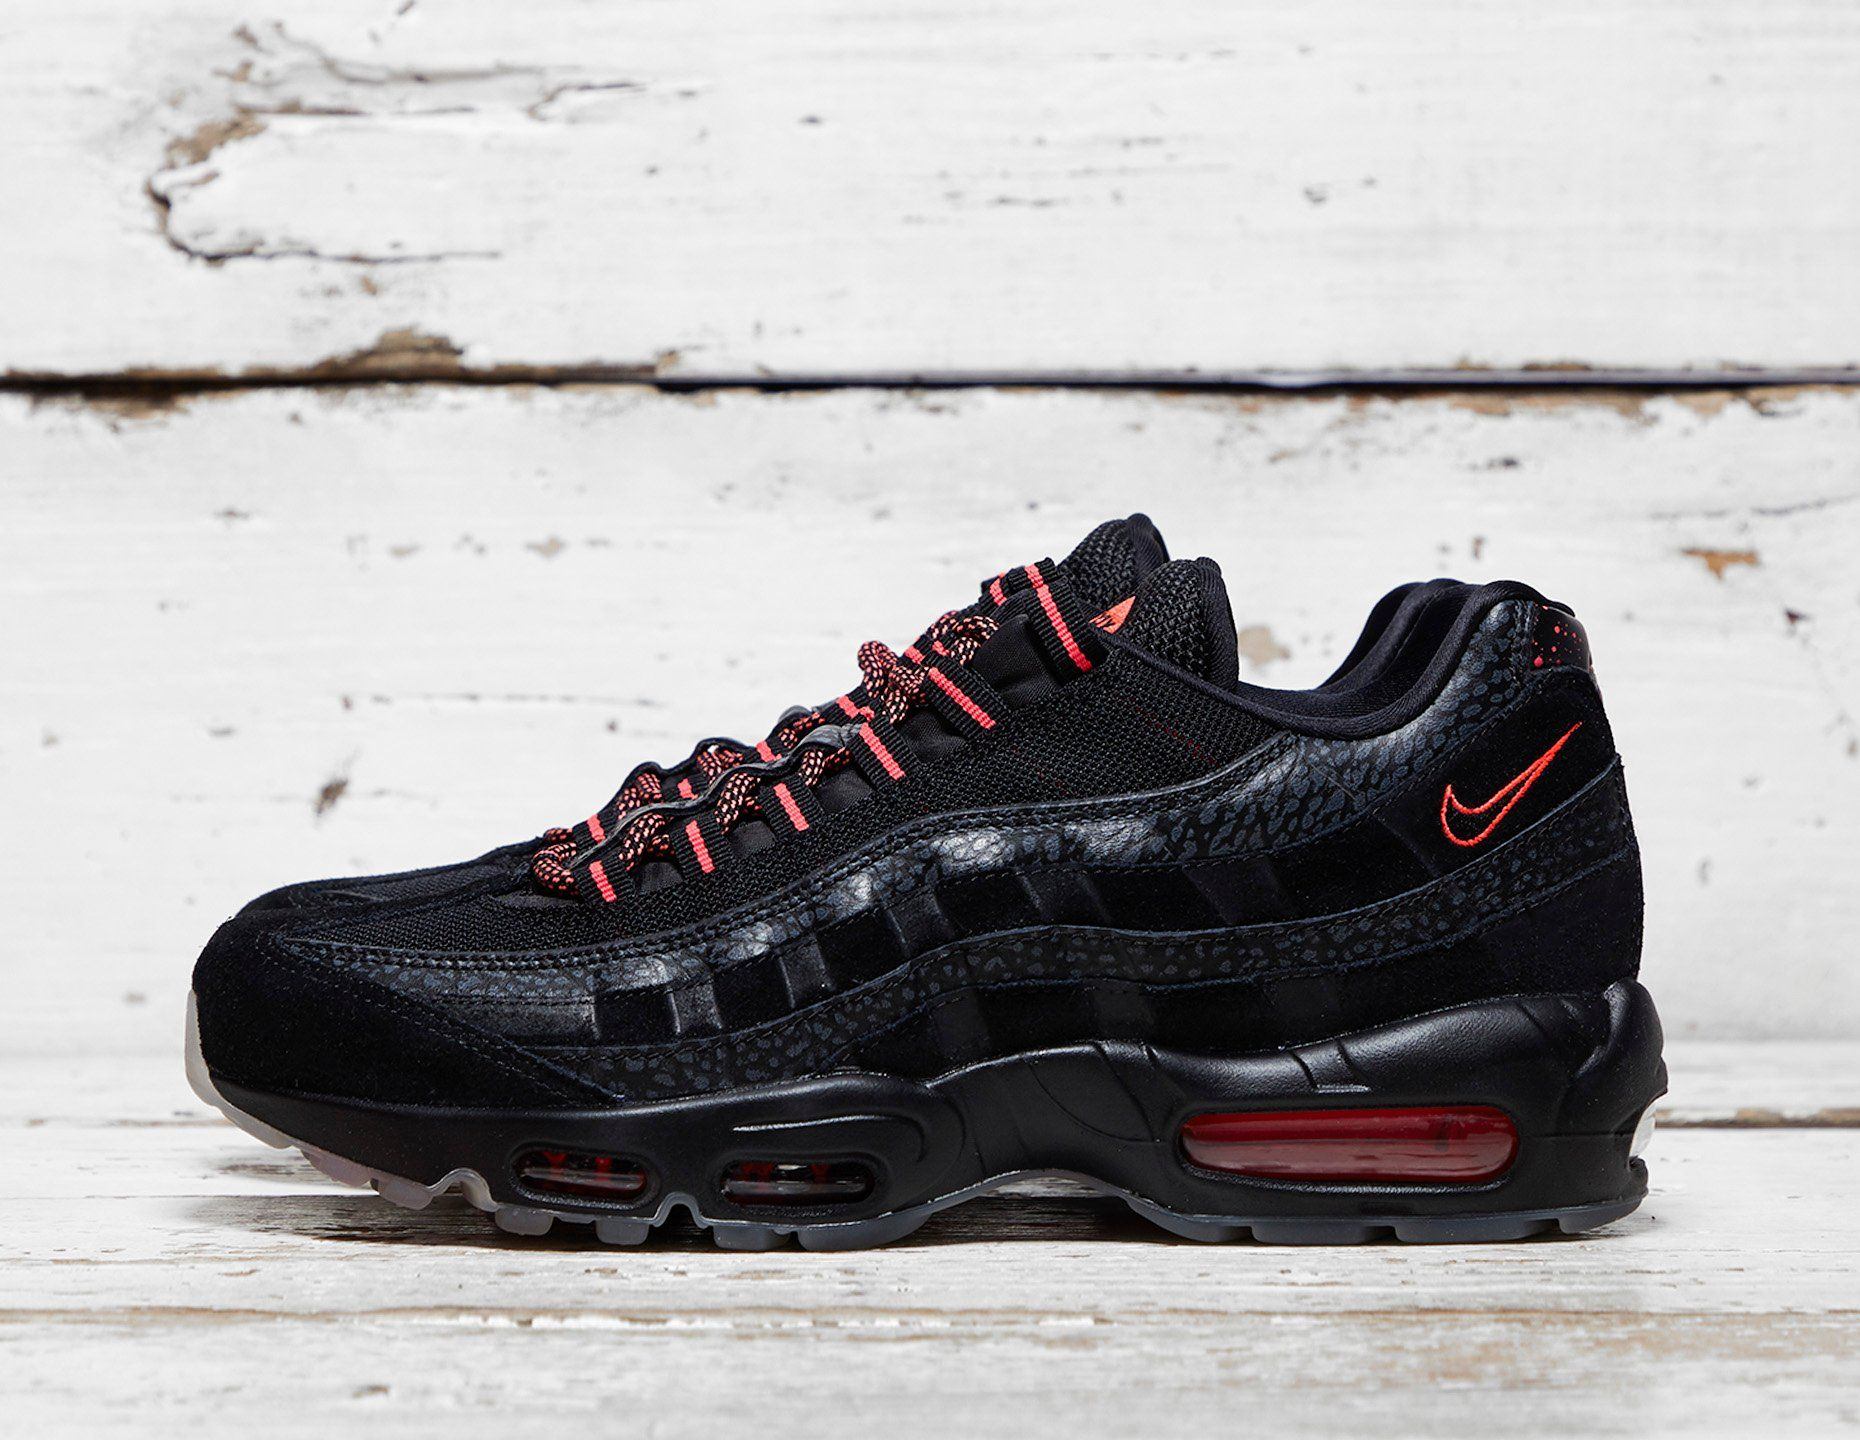 Nike Air Max 95 'Greatest Hits' Pack